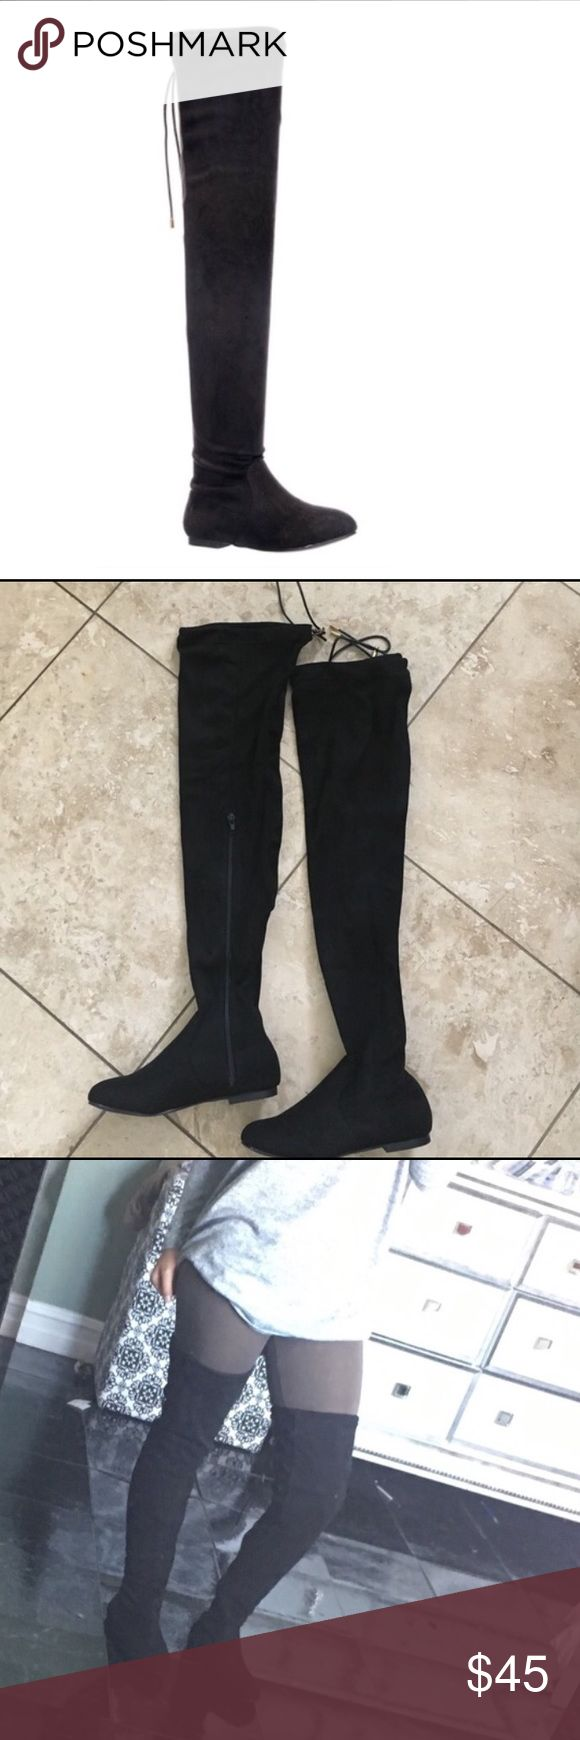 Black thigh high flat boots Perfect for the winter black thigh high suede flat boots. brand new in the box. The back of the thigh has an adjustable lace to loosen or tighten the fit. Partial zipper on the size. These run true to size and are lightweight. Will fit loose on slimmer legs   ❗️❗️PRICE IS FIRM❗️❗️ Shoes Over the Knee Boots